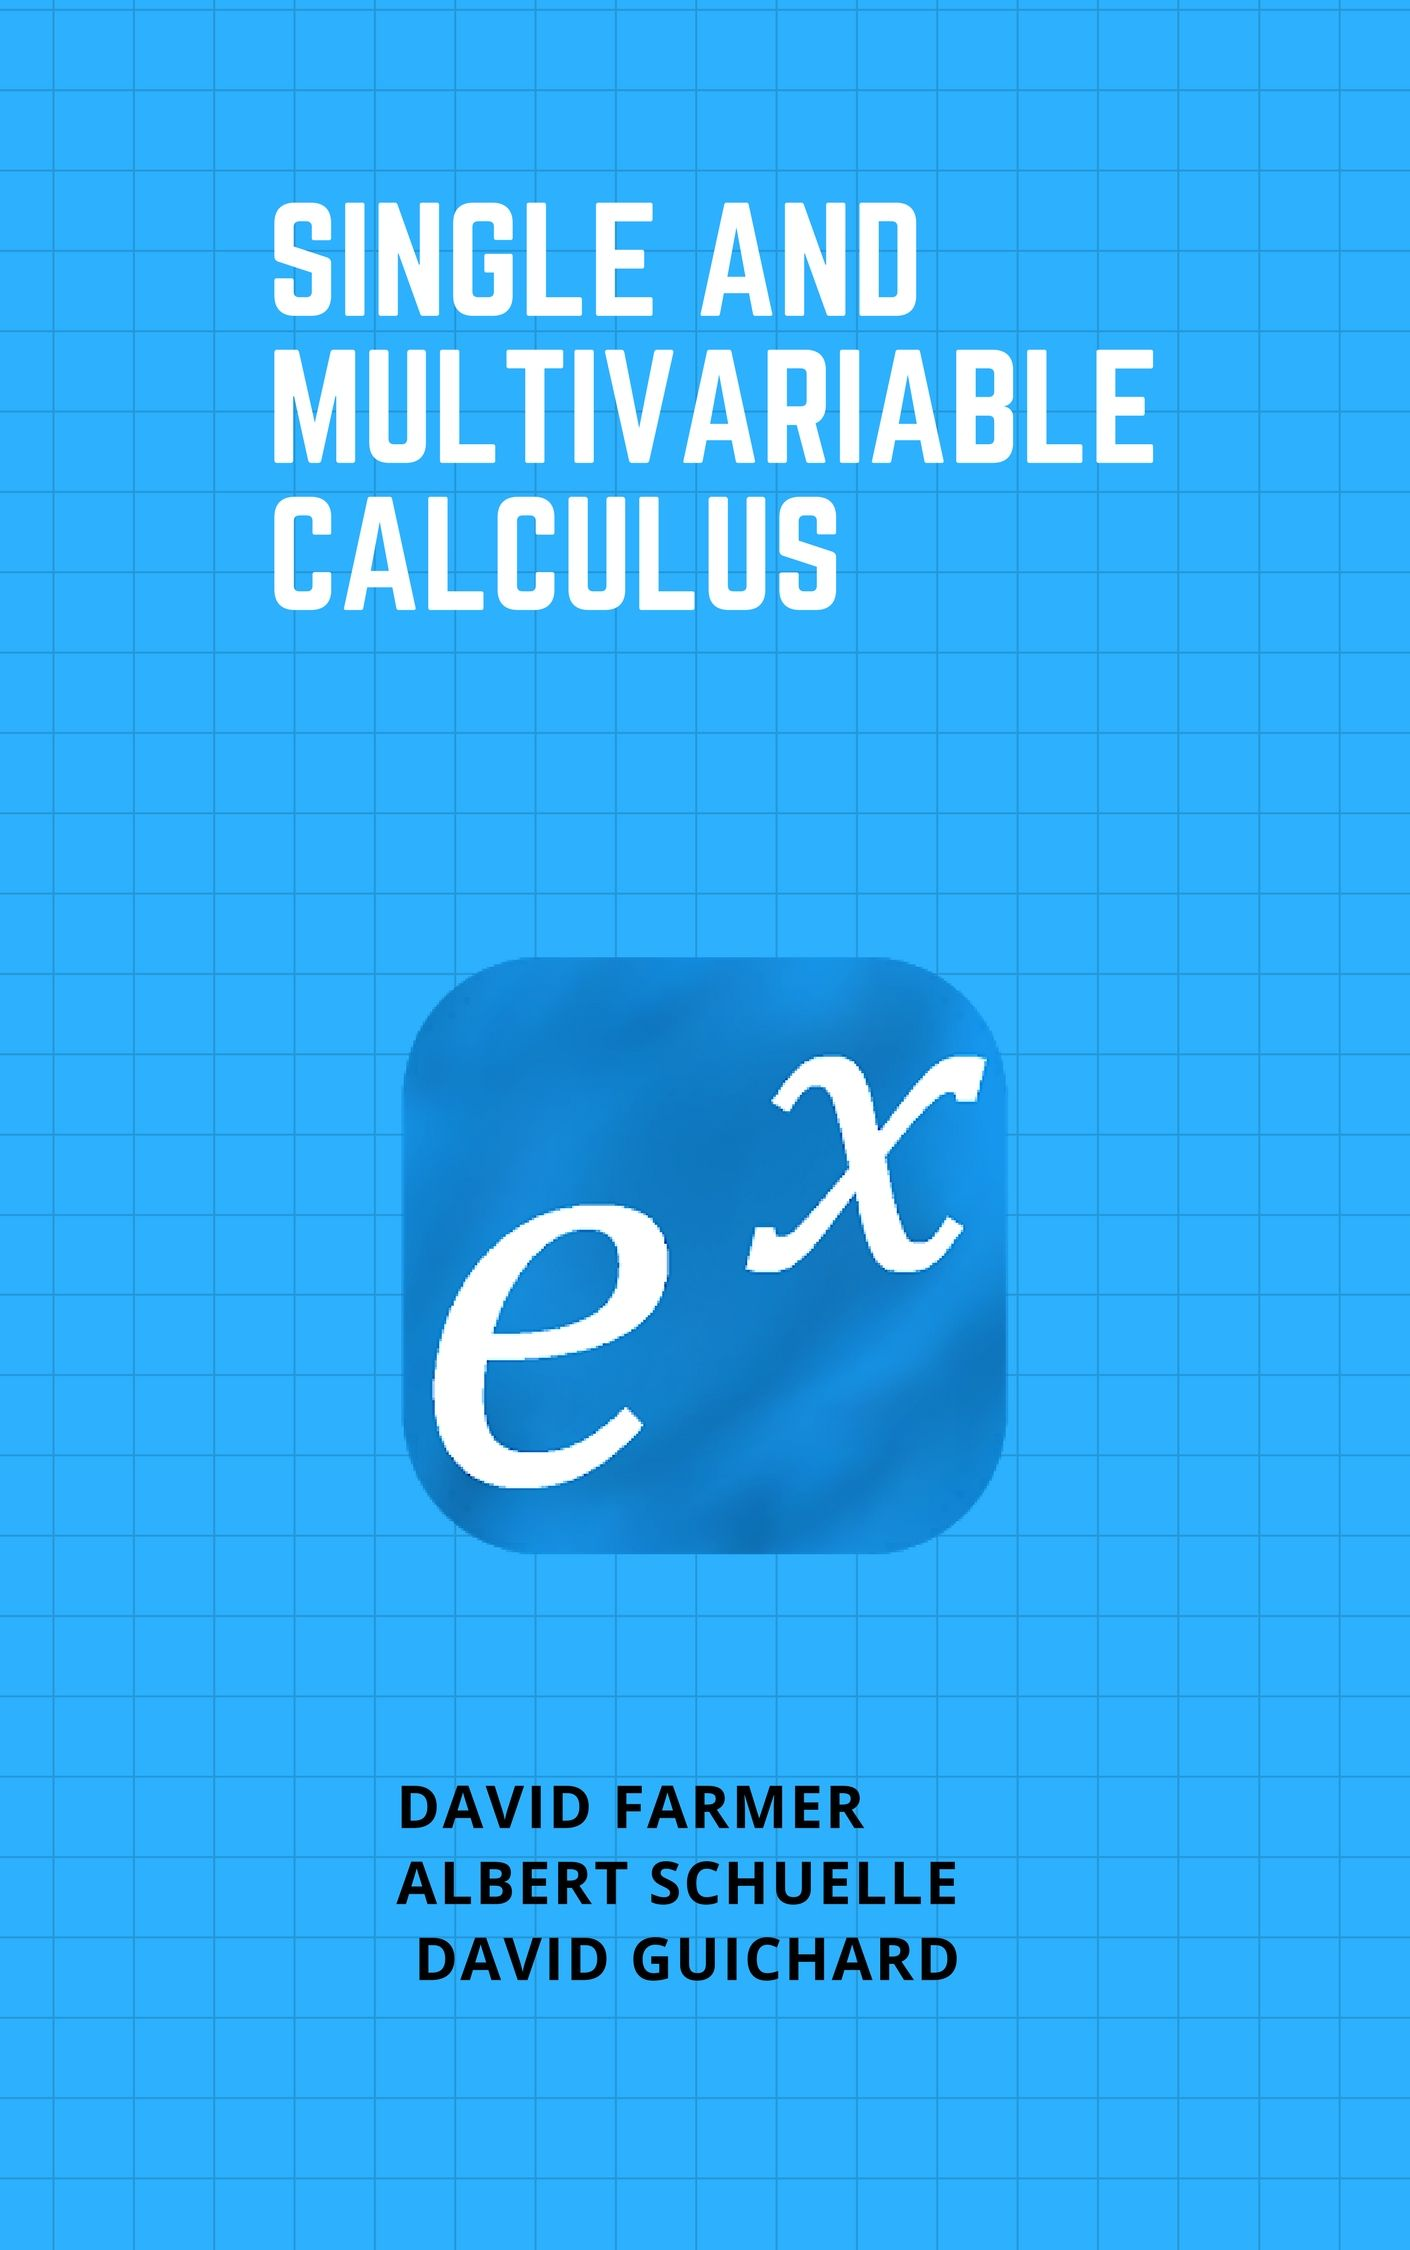 Single And Multivariable Calculus By Farmer, Schuelle